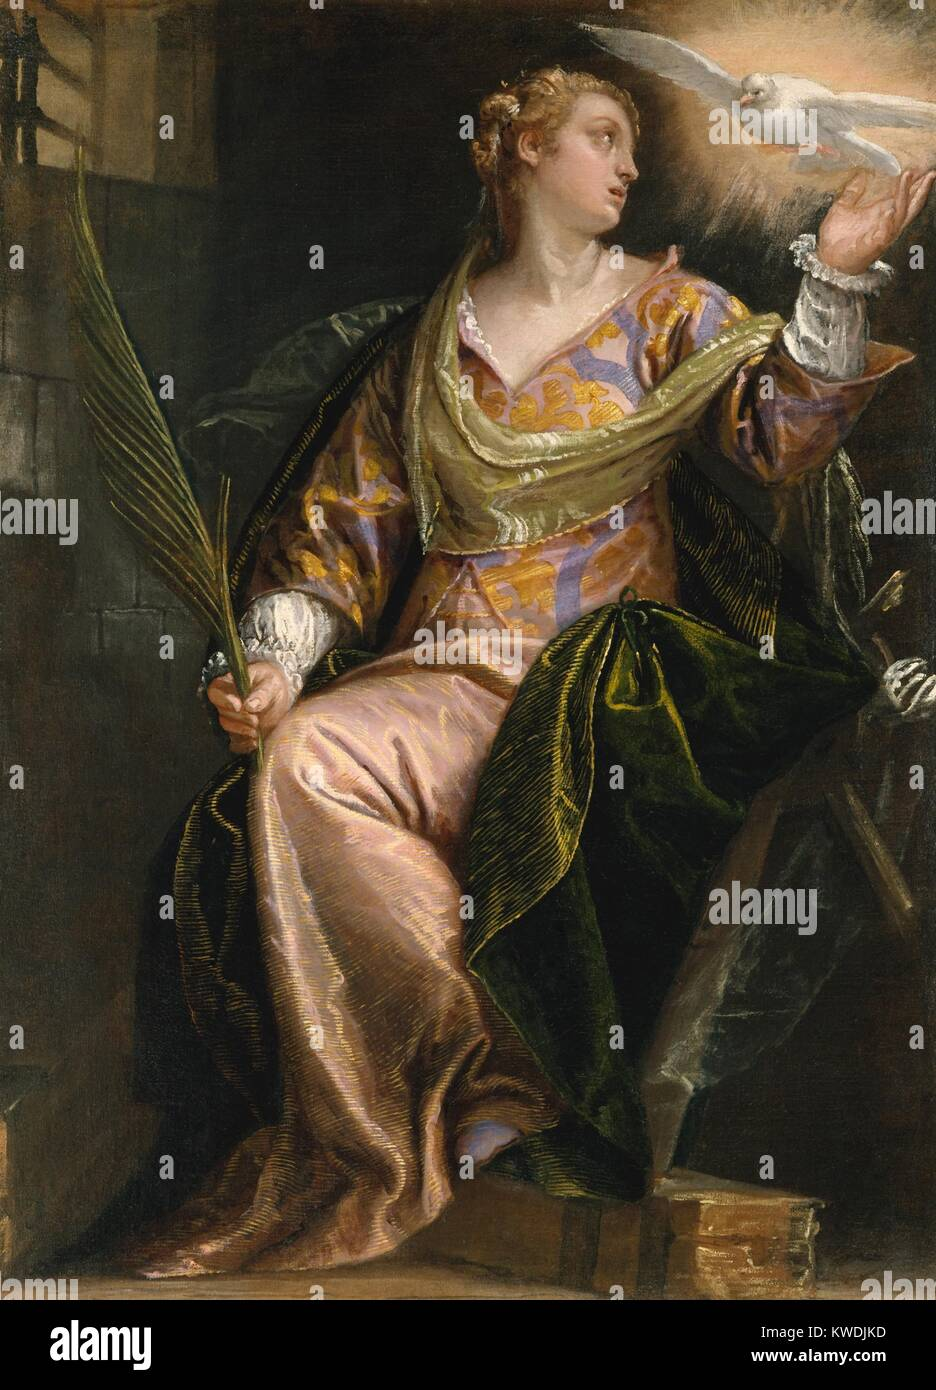 ST. CATHERINE OF ALEXANDRIA IN PRISON, by Paolo Veronese, 1580–85, Italian Renaissance painting. The young saint - Stock Image